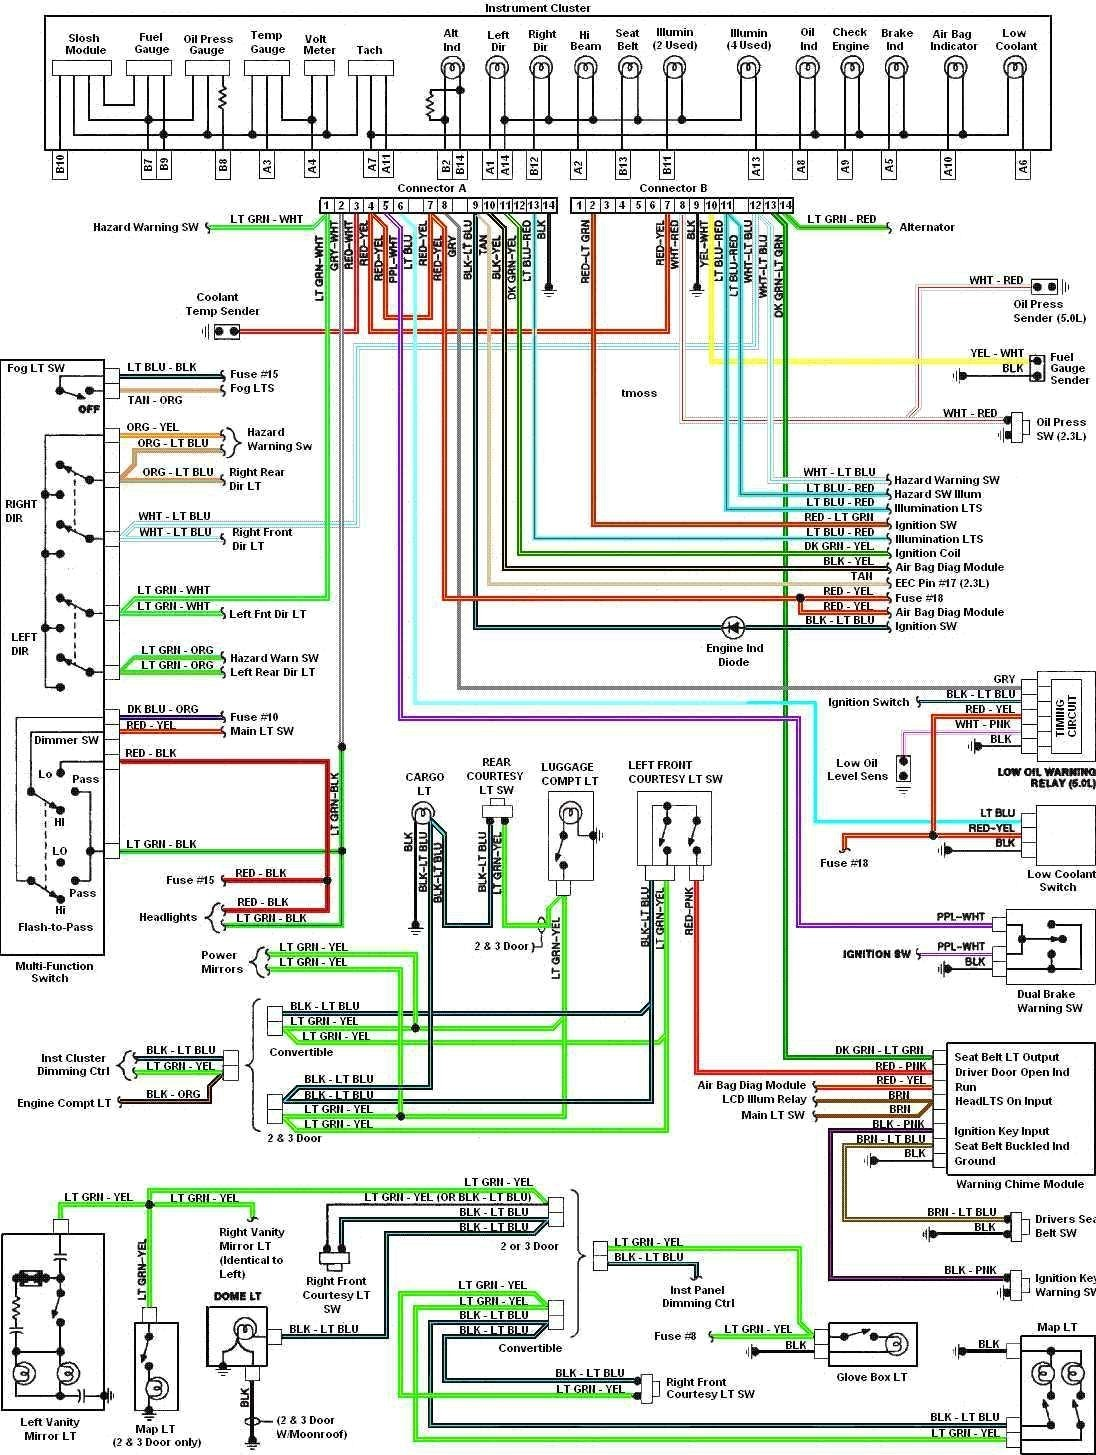 2008 Ford Super Duty Stereo Wiring Diagram -Dragon Gauge Oil Pressure Wiring  Diagram | Begeboy Wiring Diagram SourceBegeboy Wiring Diagram Source